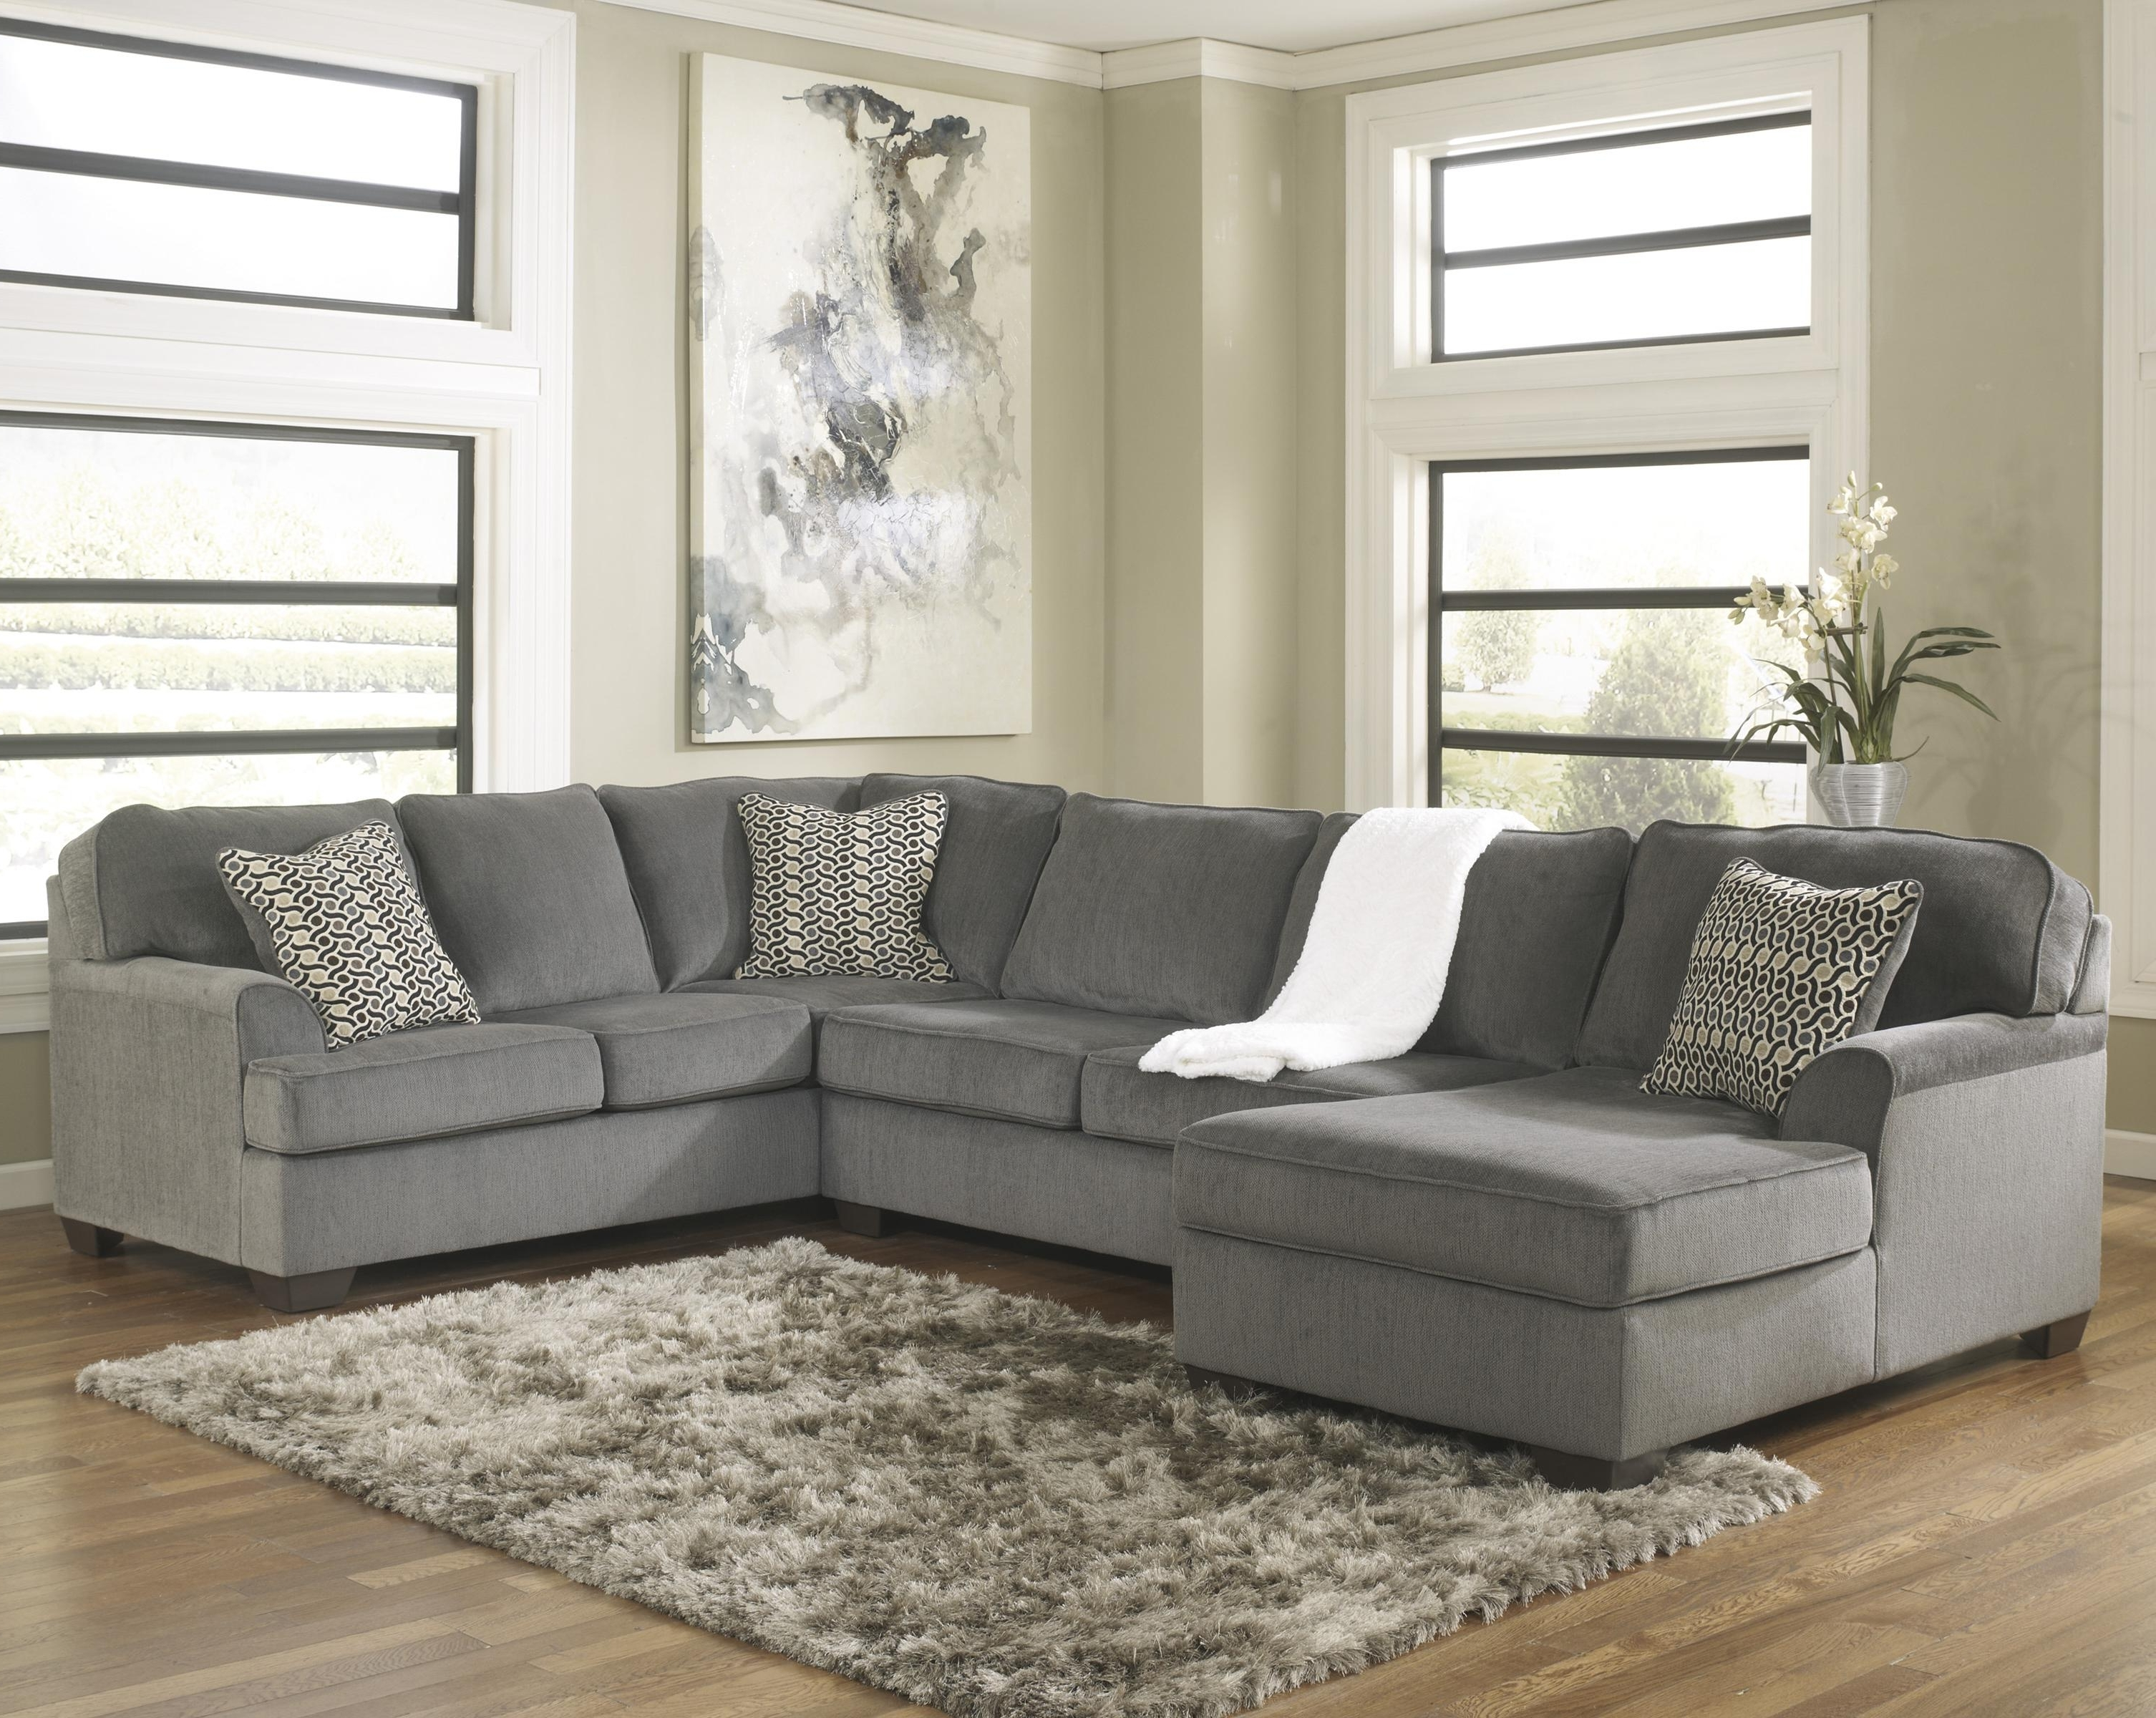 Ashley Furniture Chaise Sofas Regarding Widely Used Ashley Furniture Loric – Smoke Contemporary 3 Piece Sectional With (View 2 of 15)